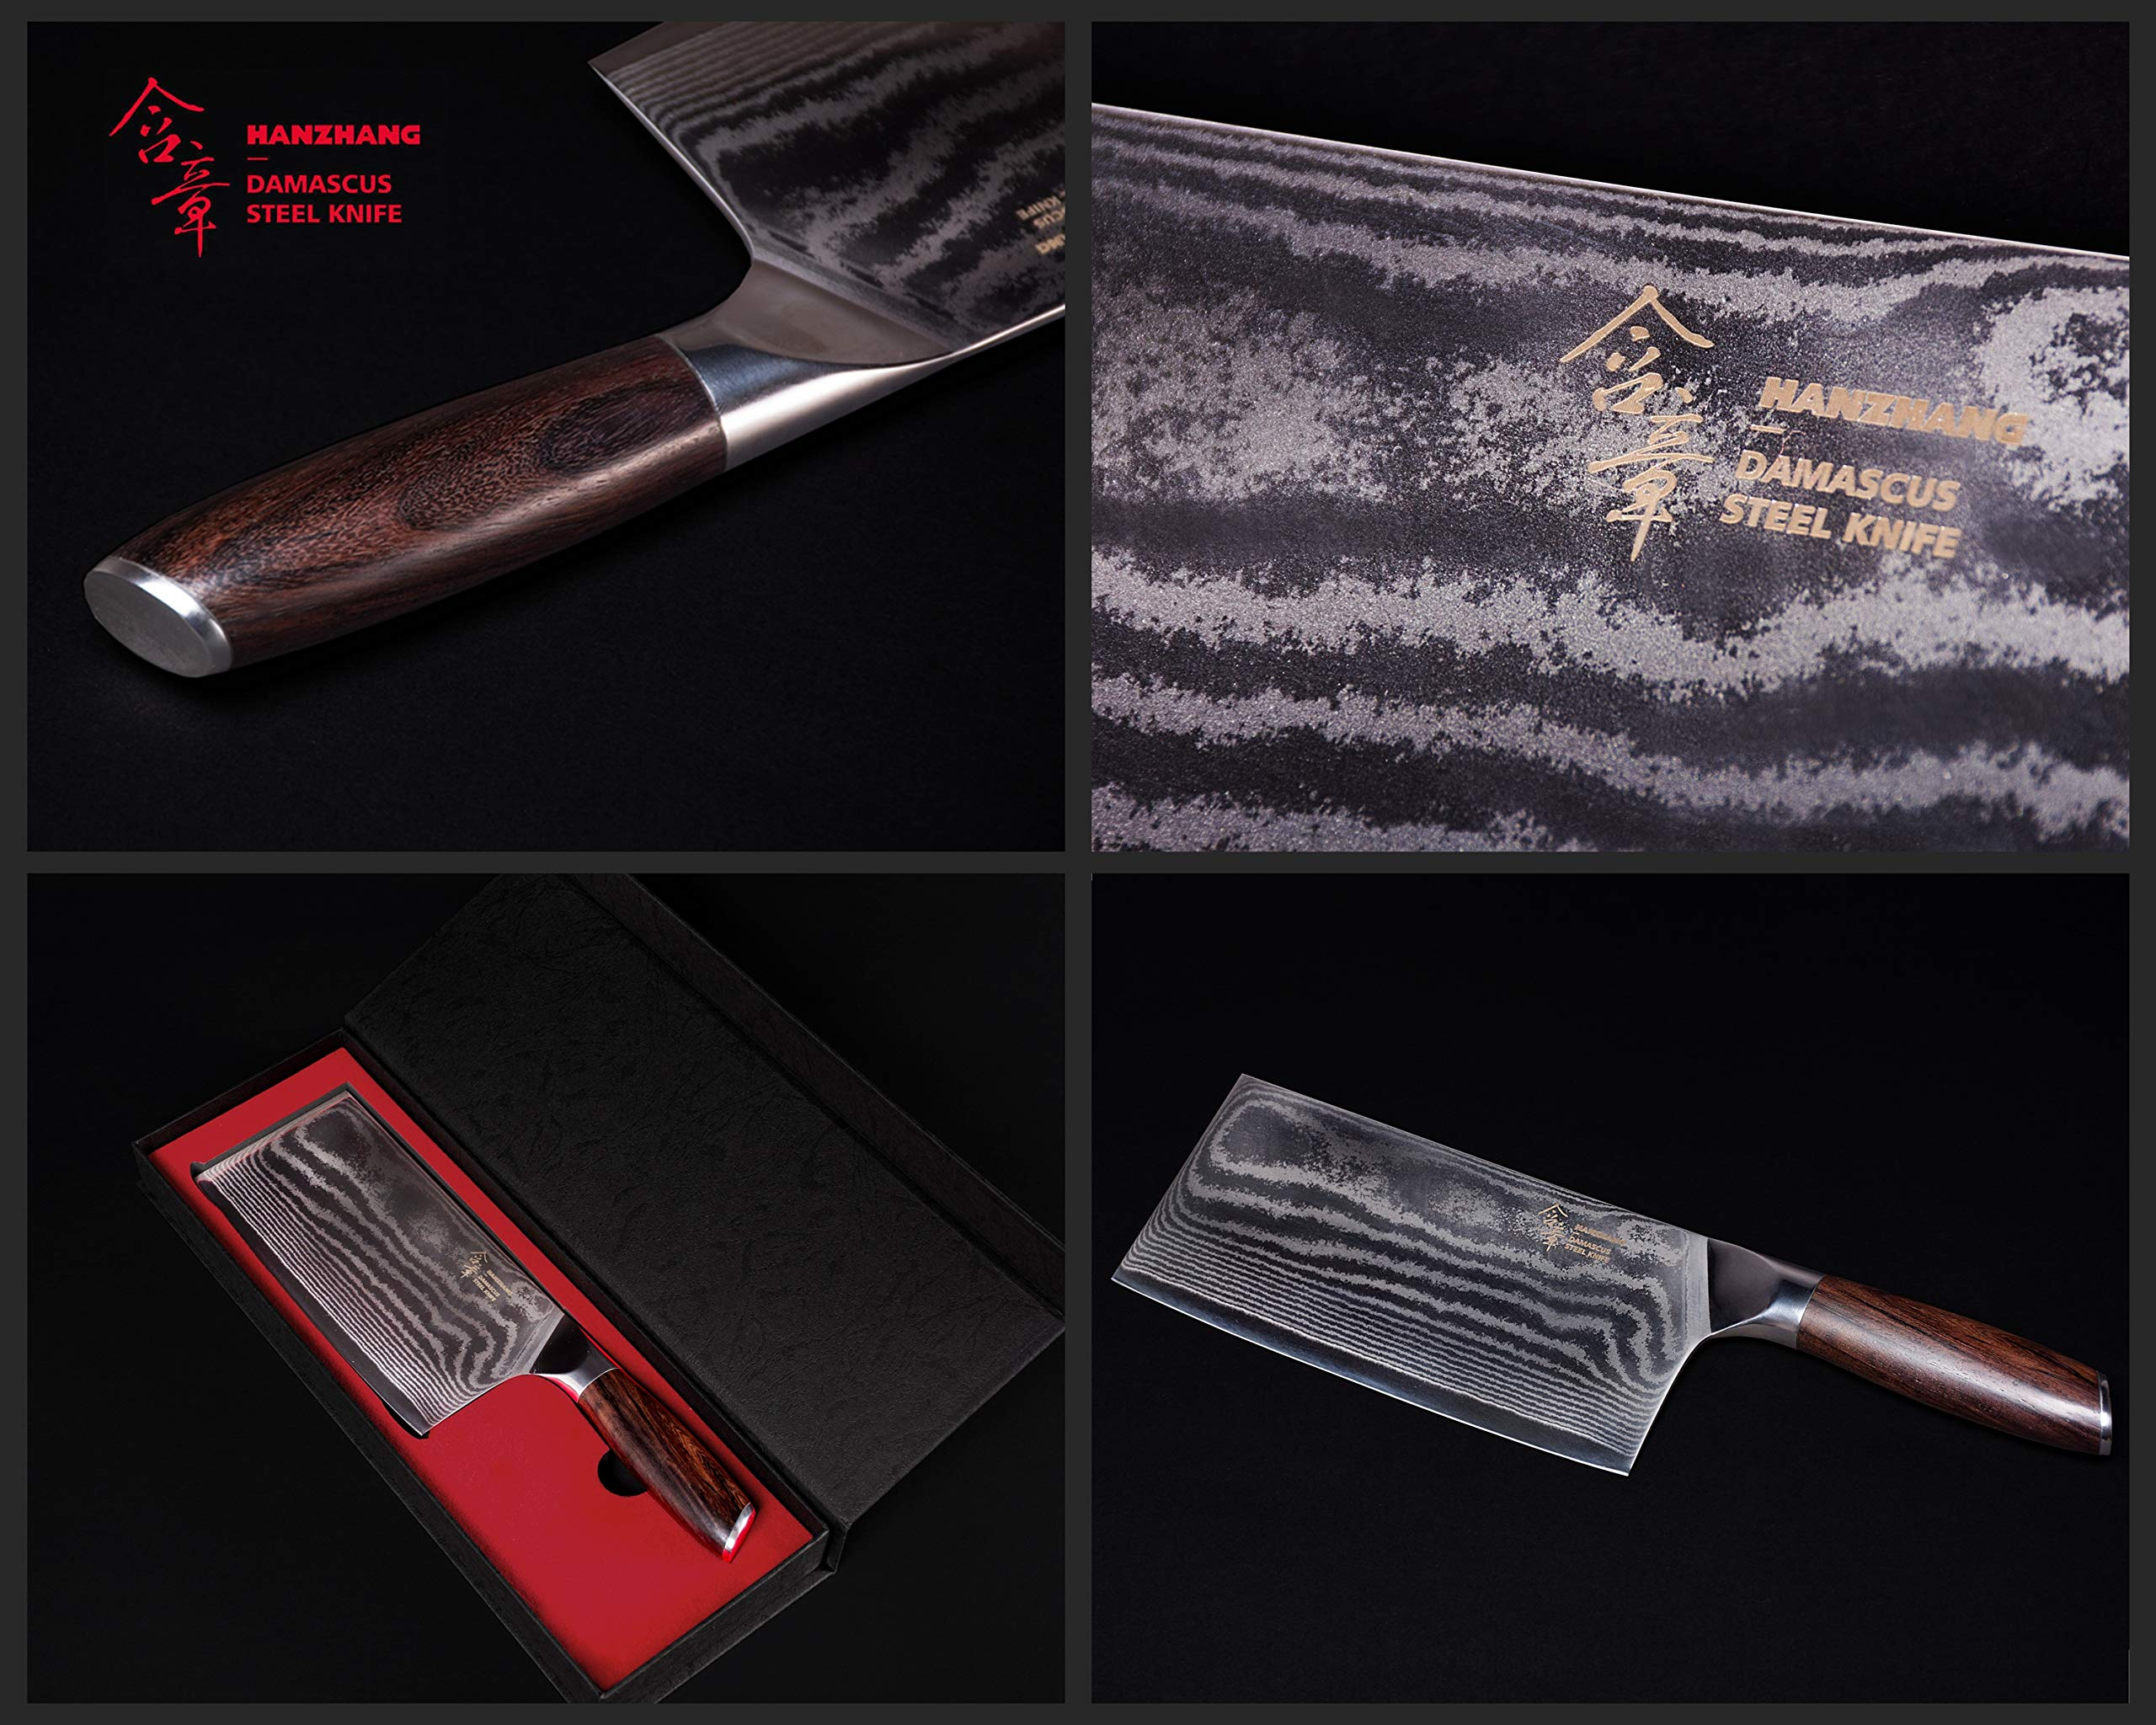 Hanzhang【含章】 刀品-菜刀CaiDao Made of Real 67-Layer Damascus Steel Refined Traditional Chinese Kitchen Knife by Hanzhang【含章】 (Image #6)